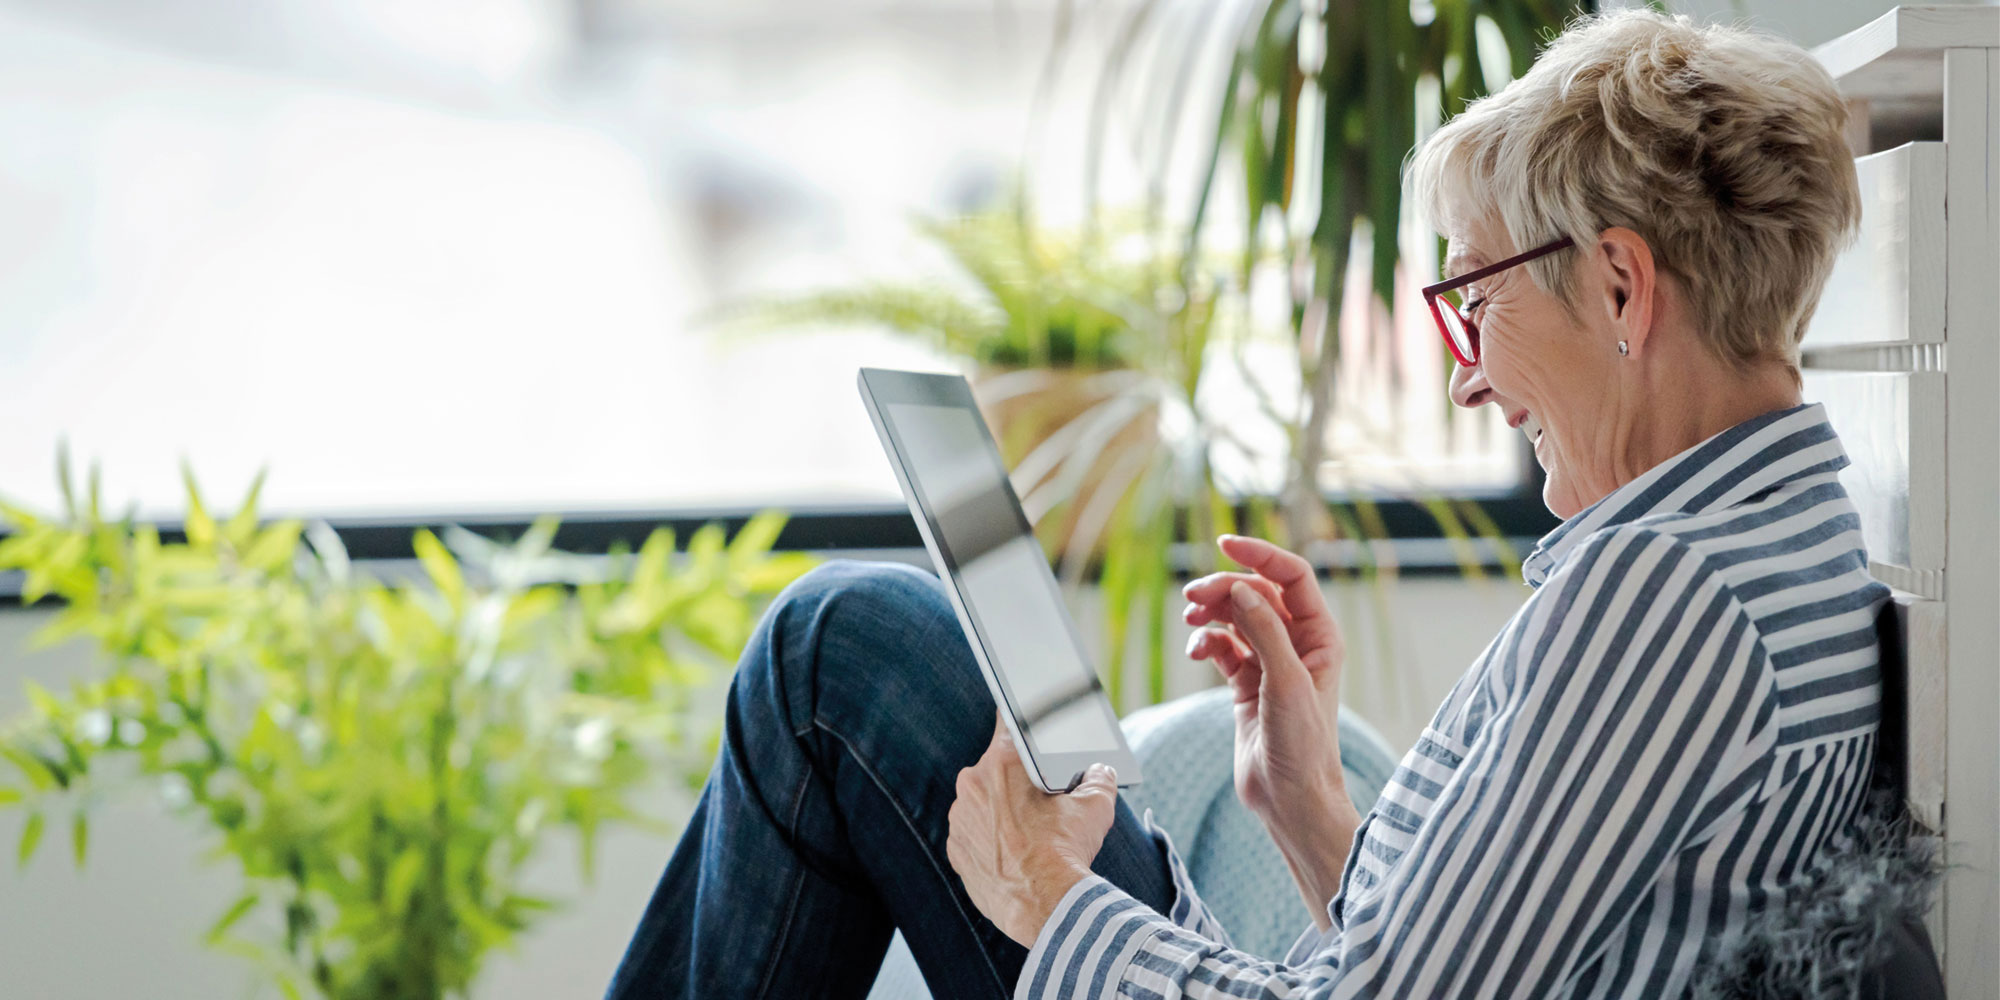 Retiree relaxing, using a tablet